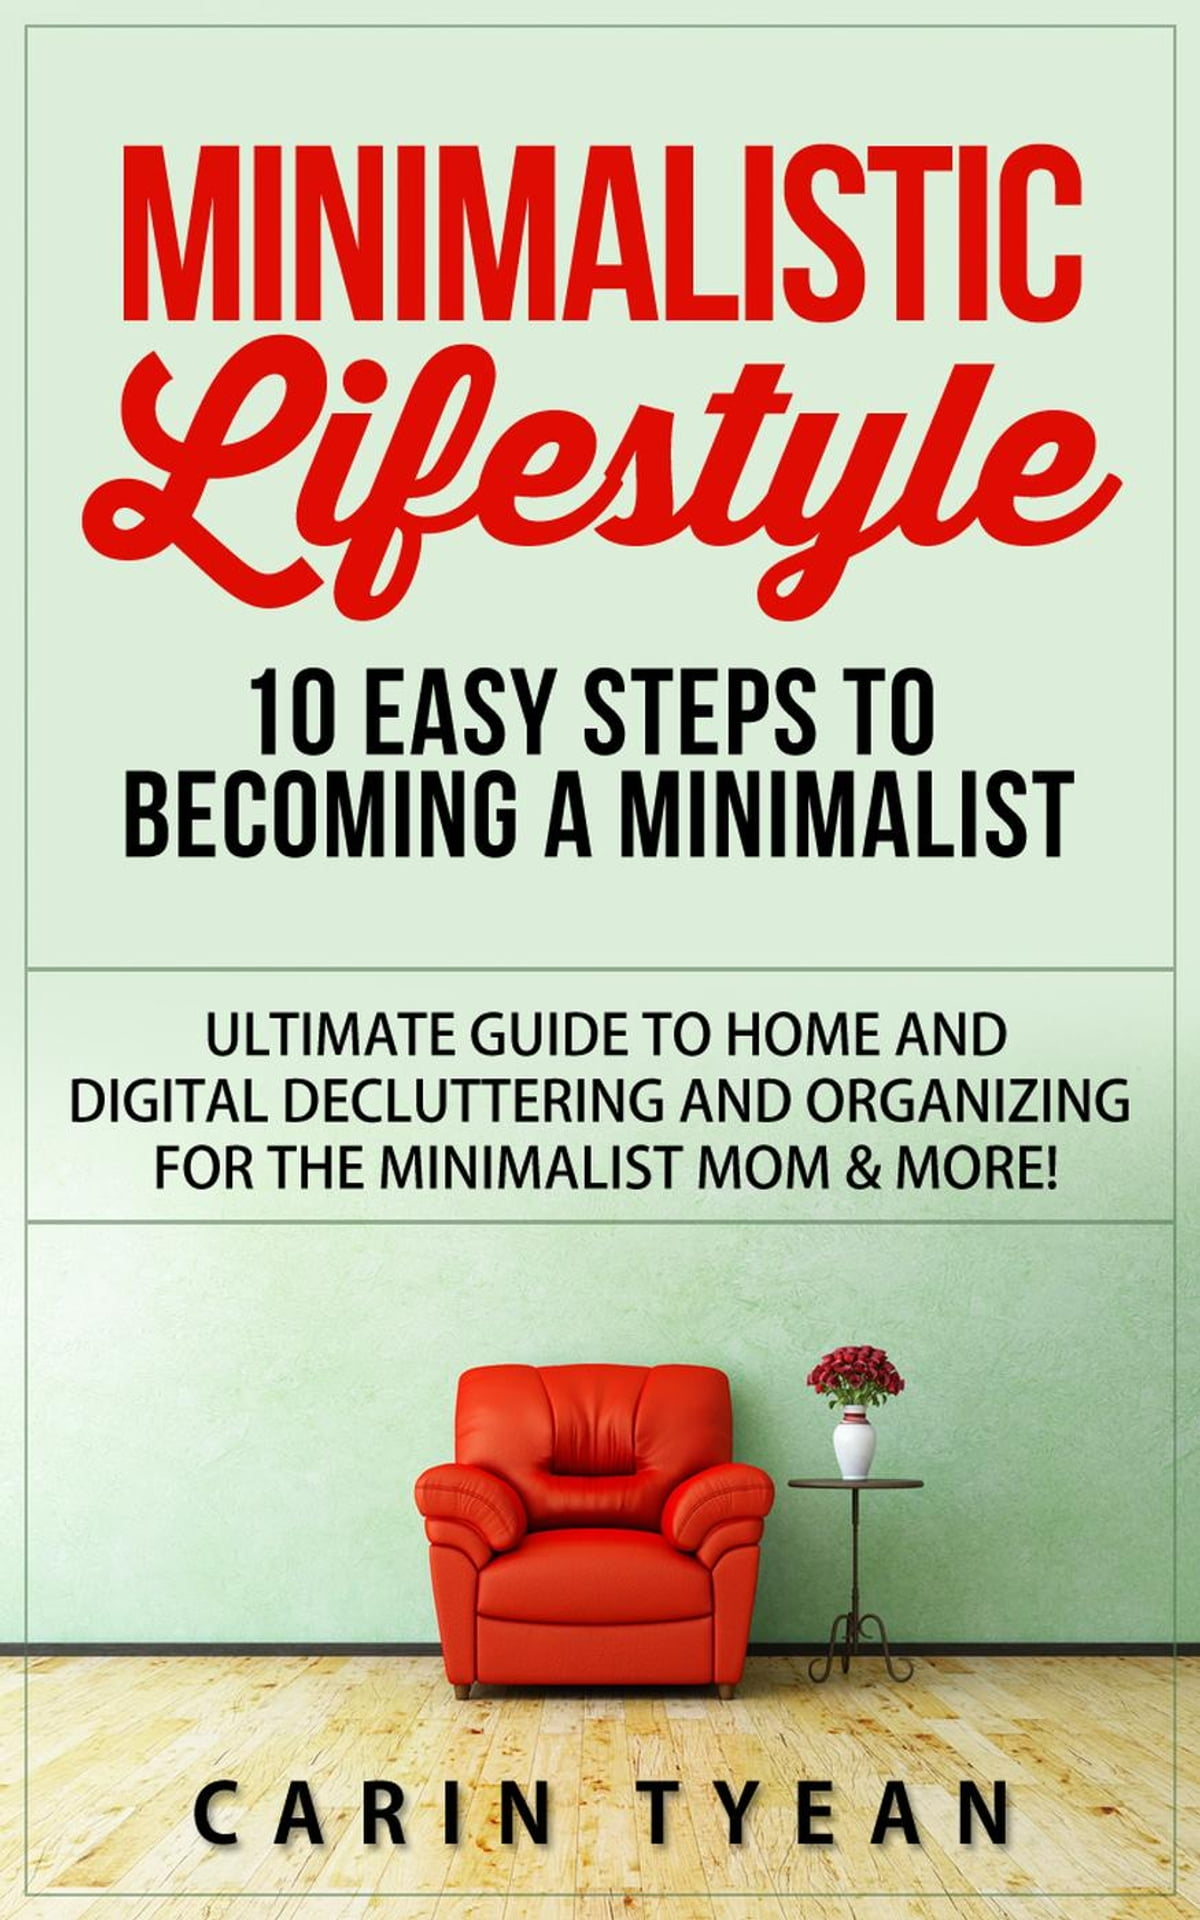 minimalistic-lifestyle-10-easy-steps-to-becoming-a-minimalist-ultimate-guide -to-home-and-digital-decluttering-and-organizing-for-the -minimalist-mom-more.jpg